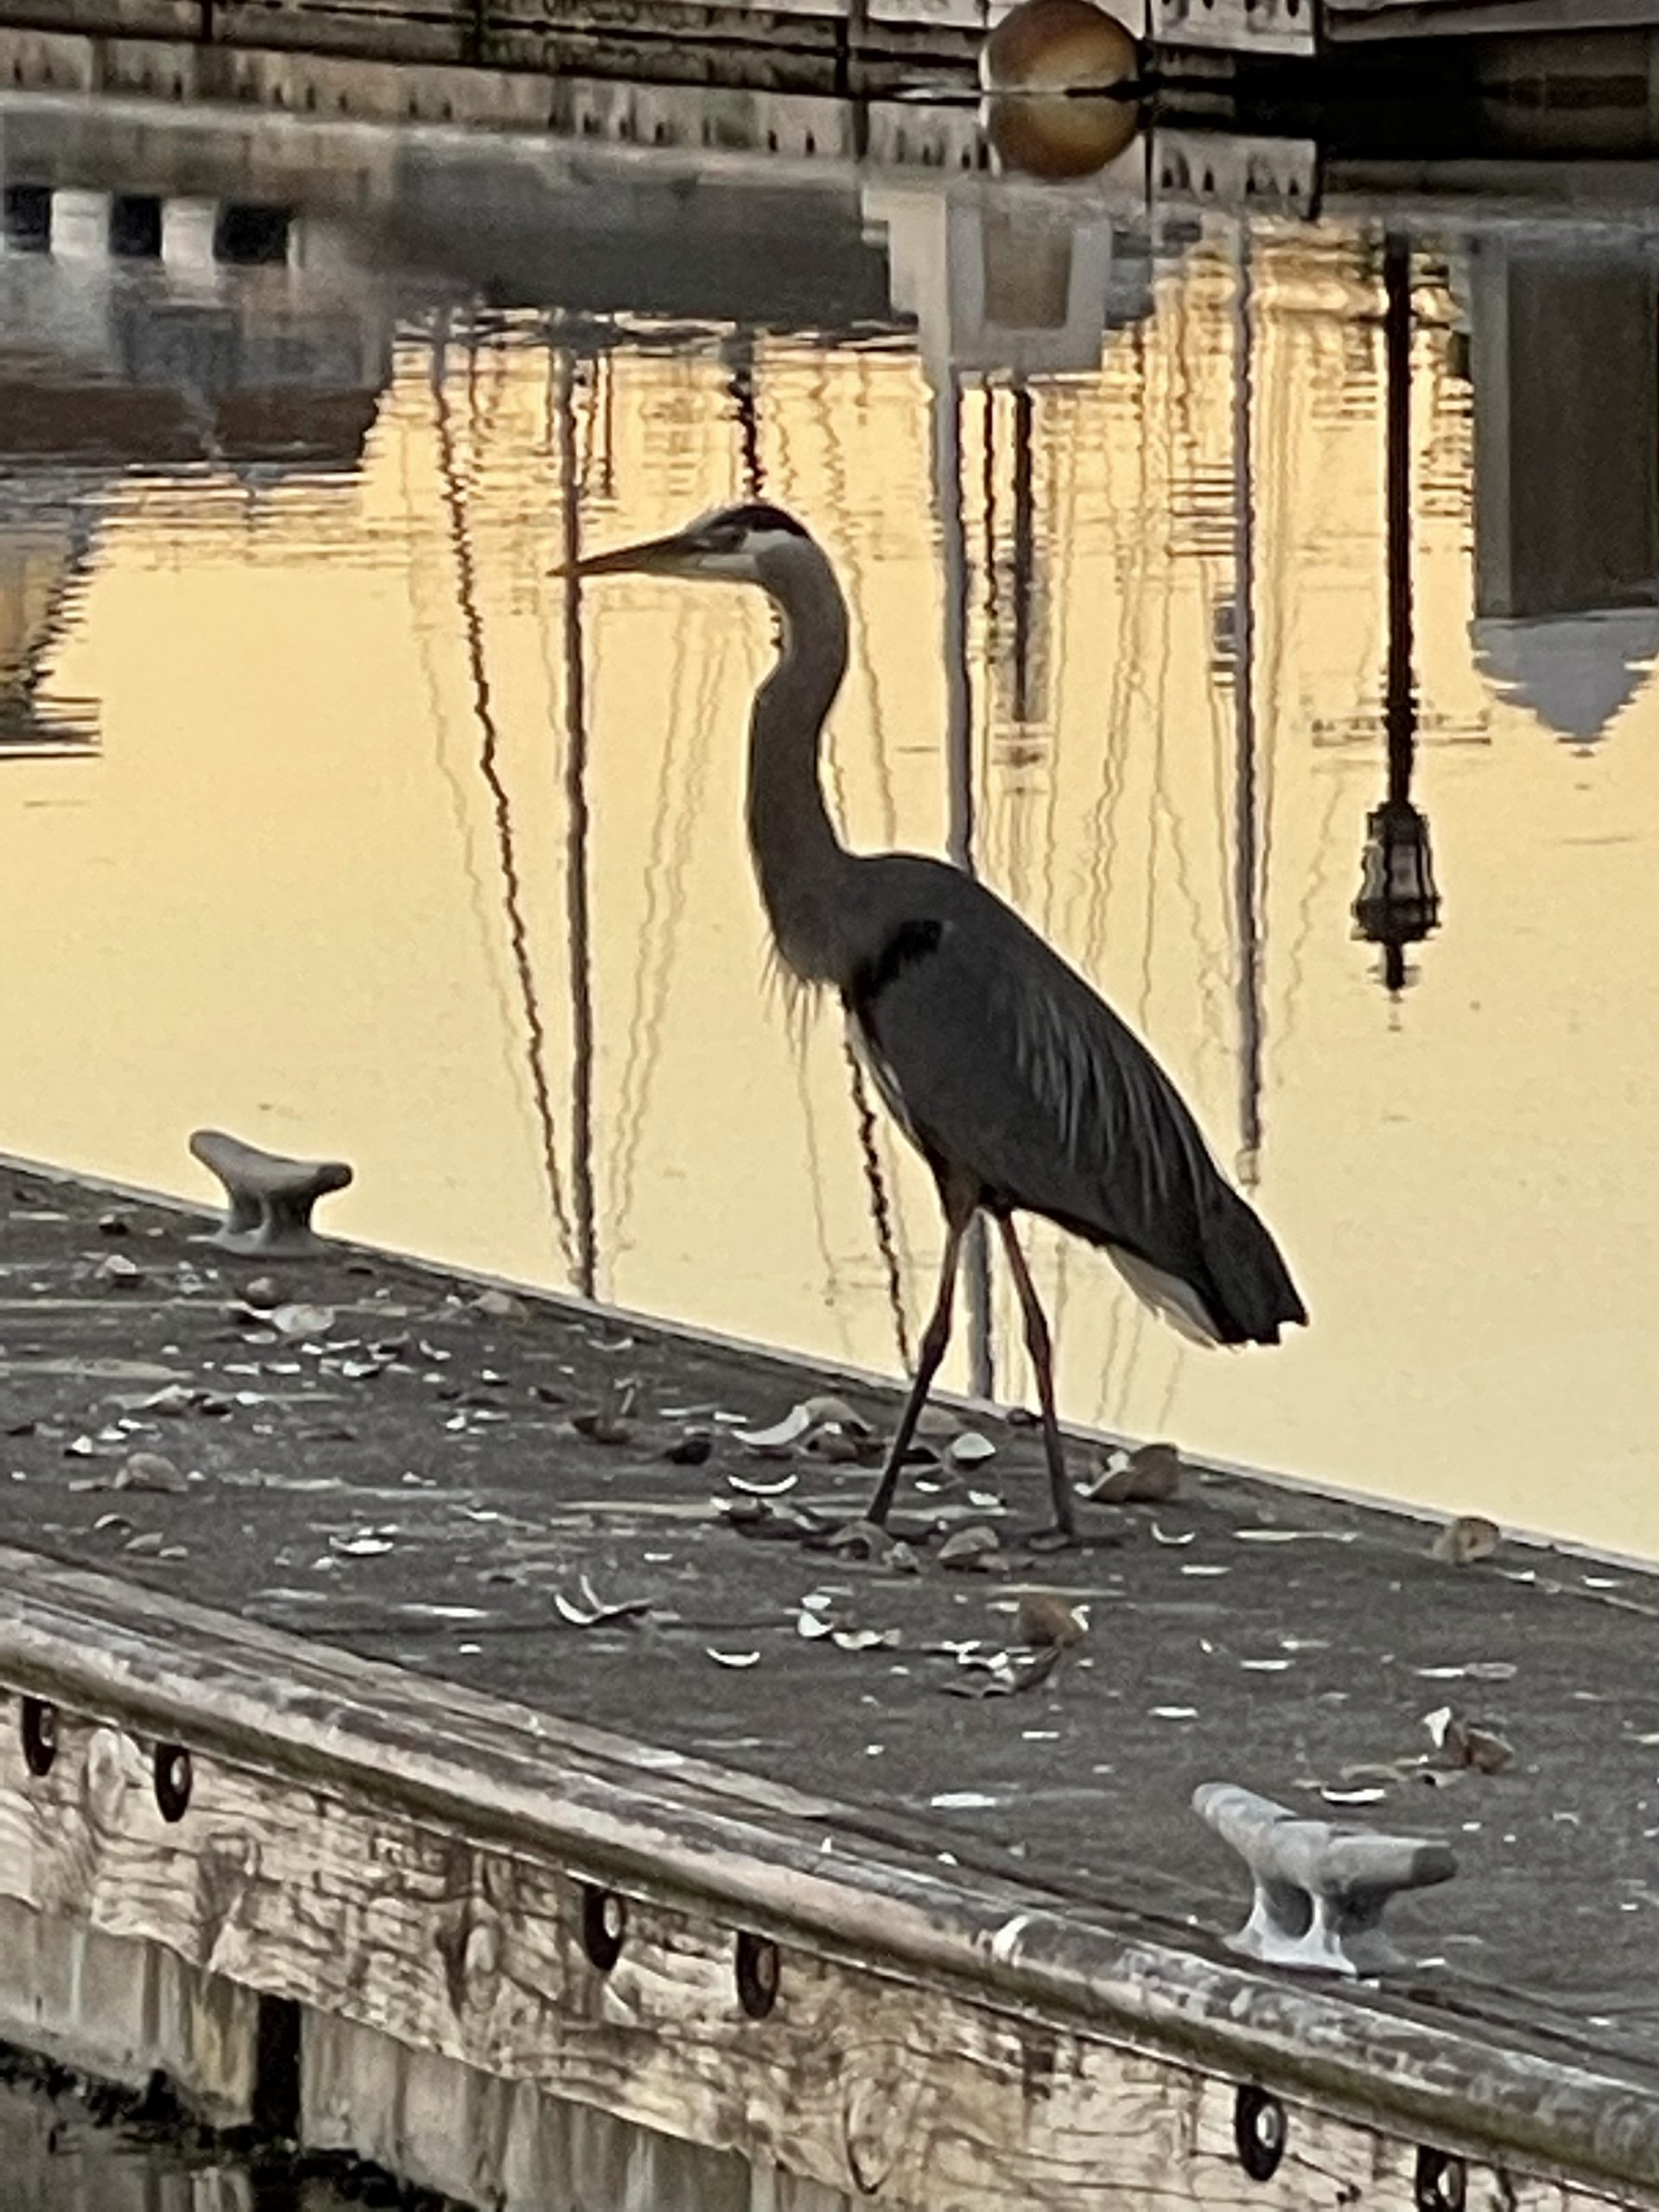 Our neighbor on the dock is a gray heron